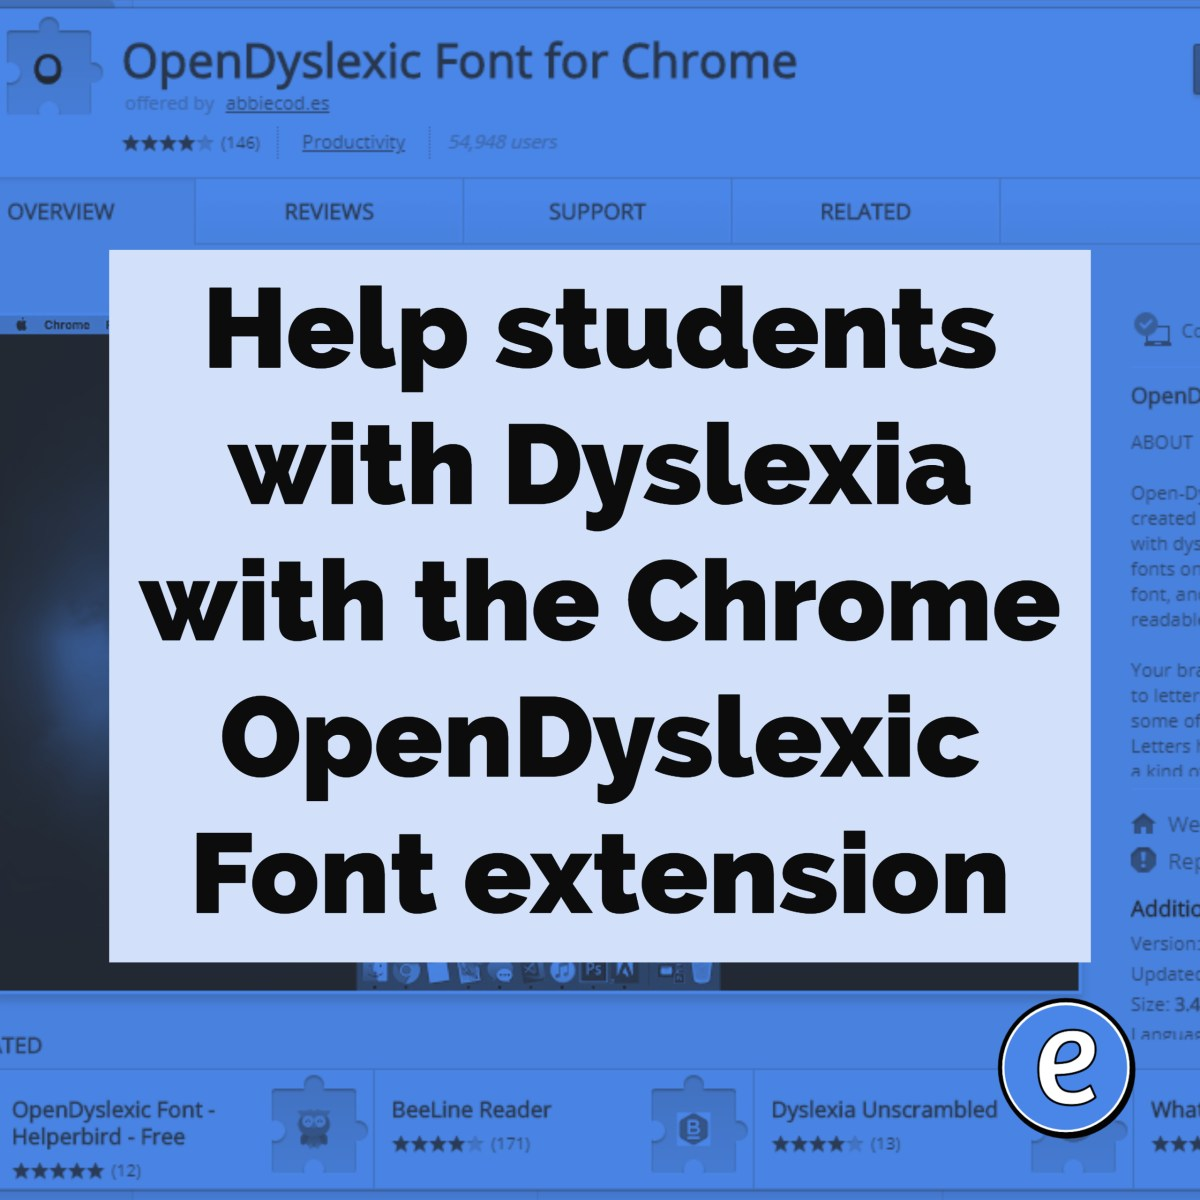 Help students with Dyslexia with the Chrome OpenDyslexic Font extension